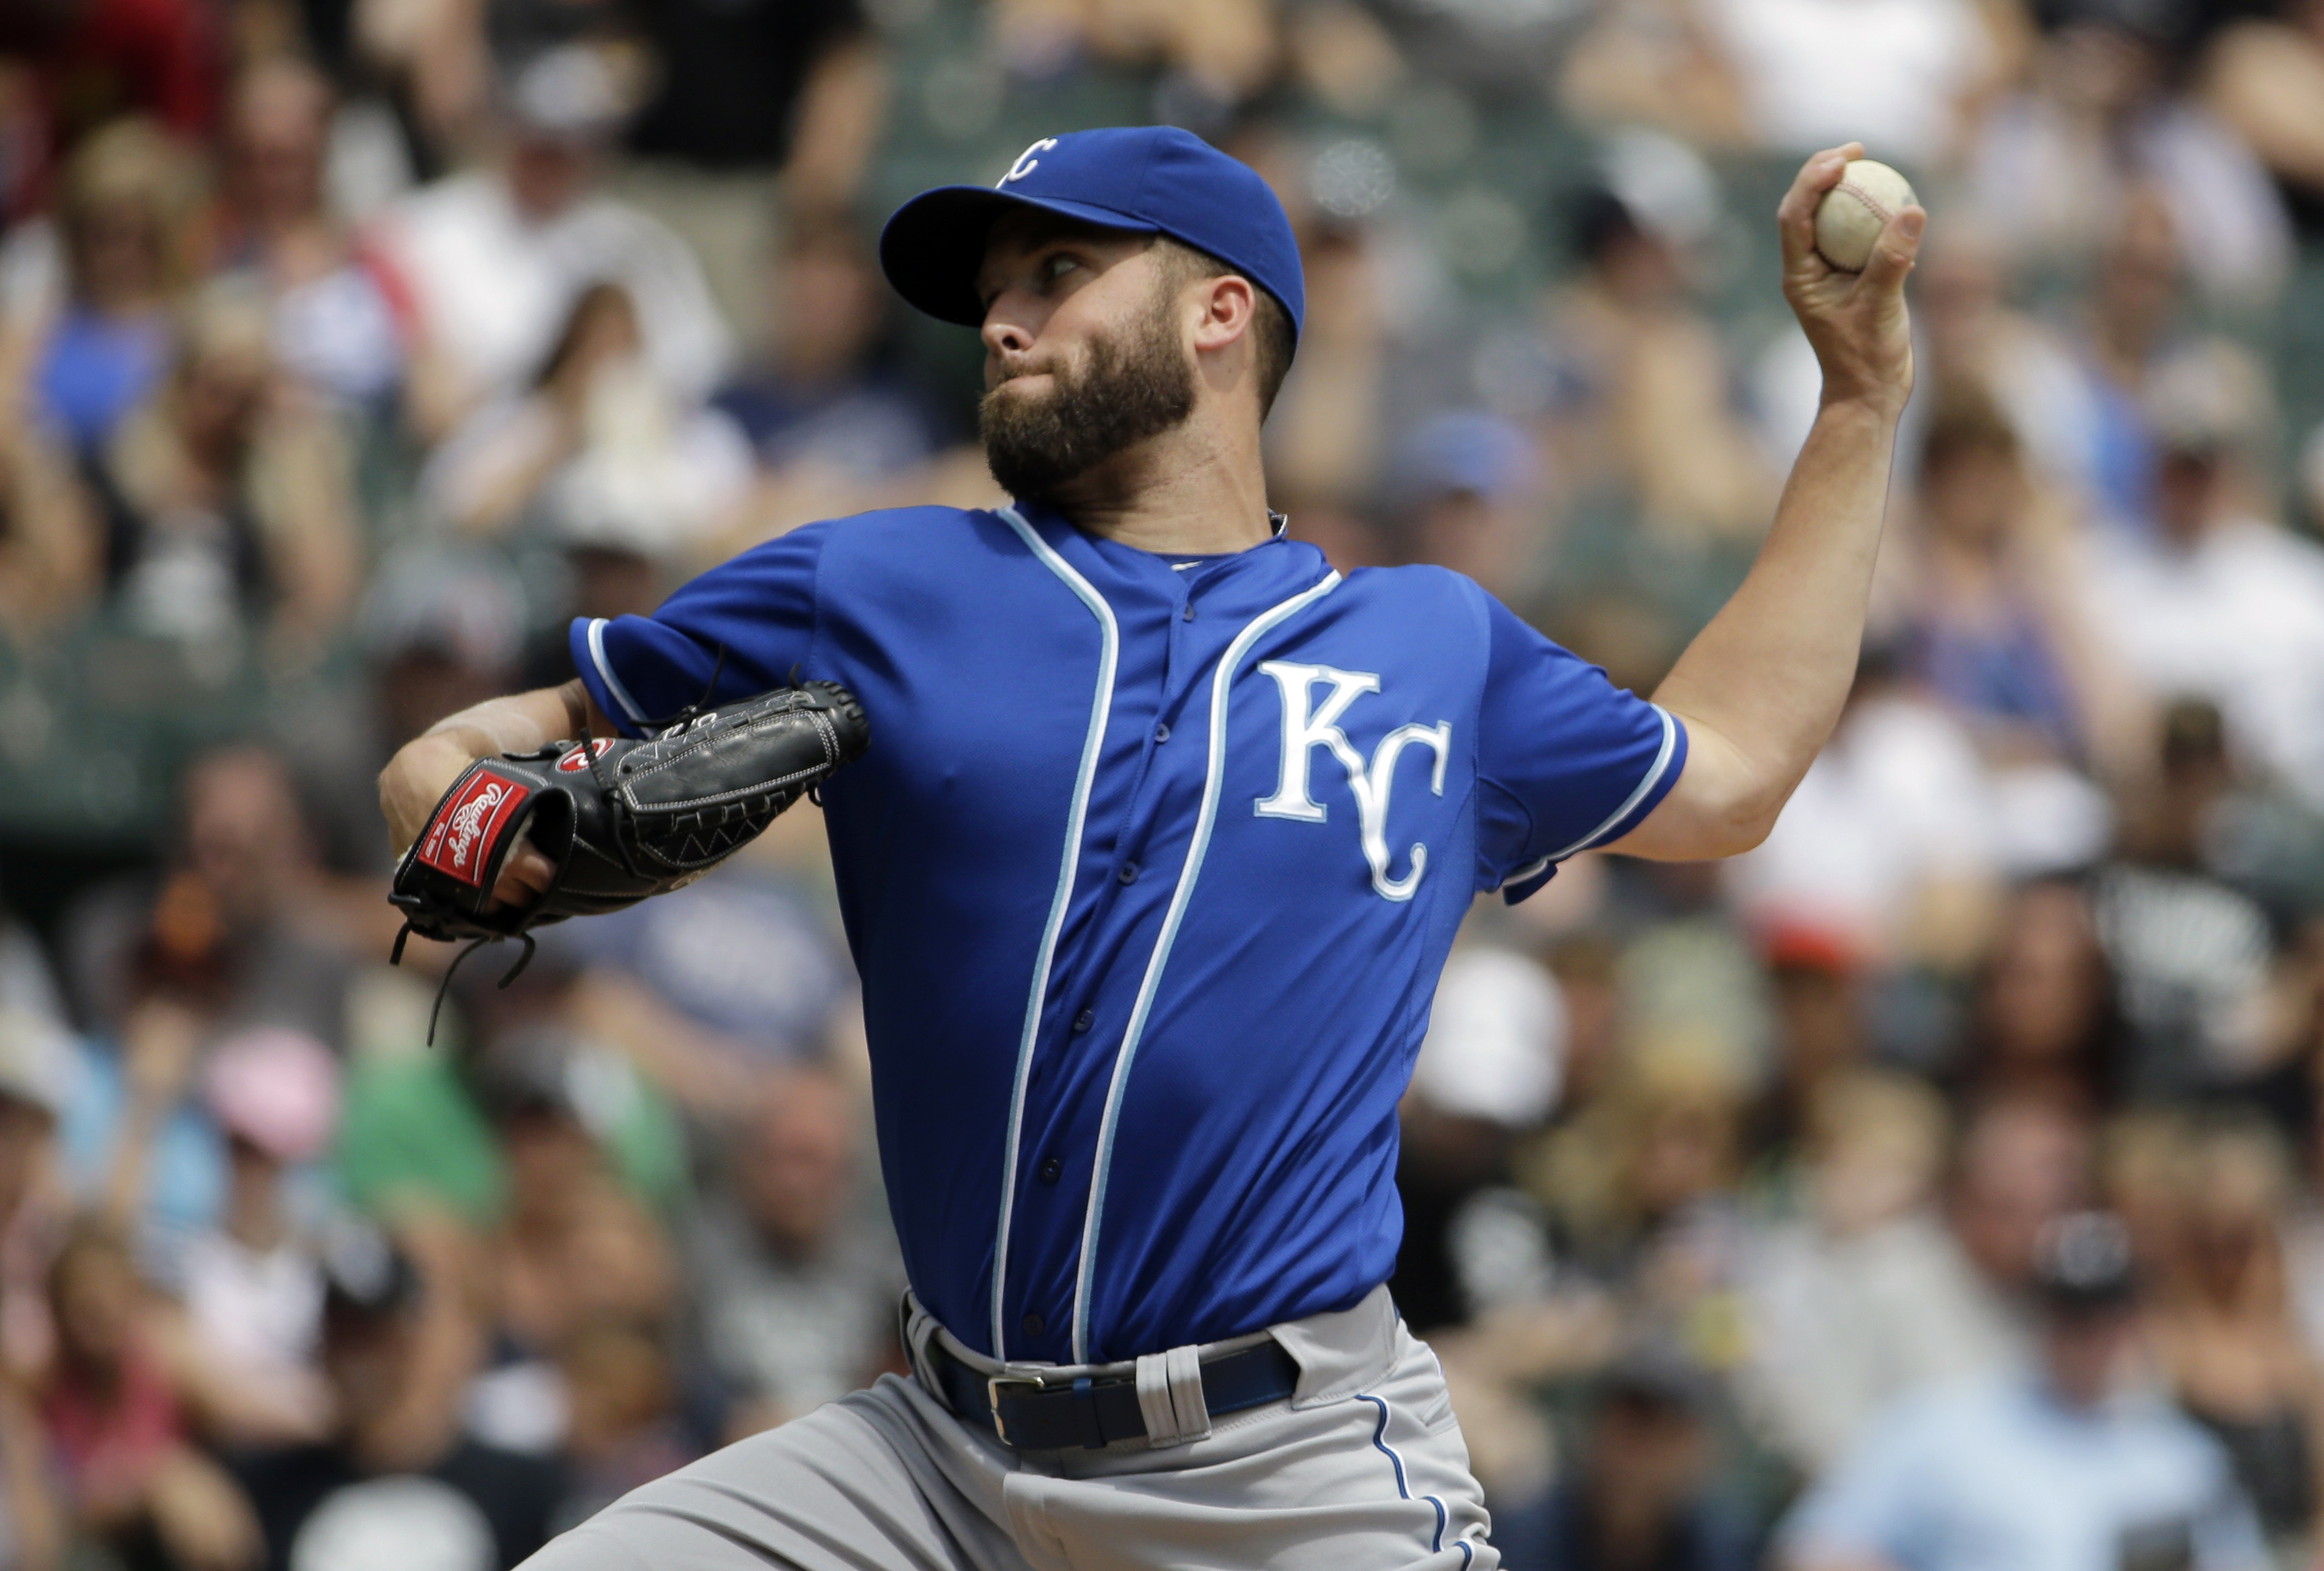 Kansas City Royals starter Danny Duffy throws against the Chicago White Sox during the first inning of a baseball game Sunday, July 19, 2015, in Chicago. (AP Photo/Nam Y. Huh)